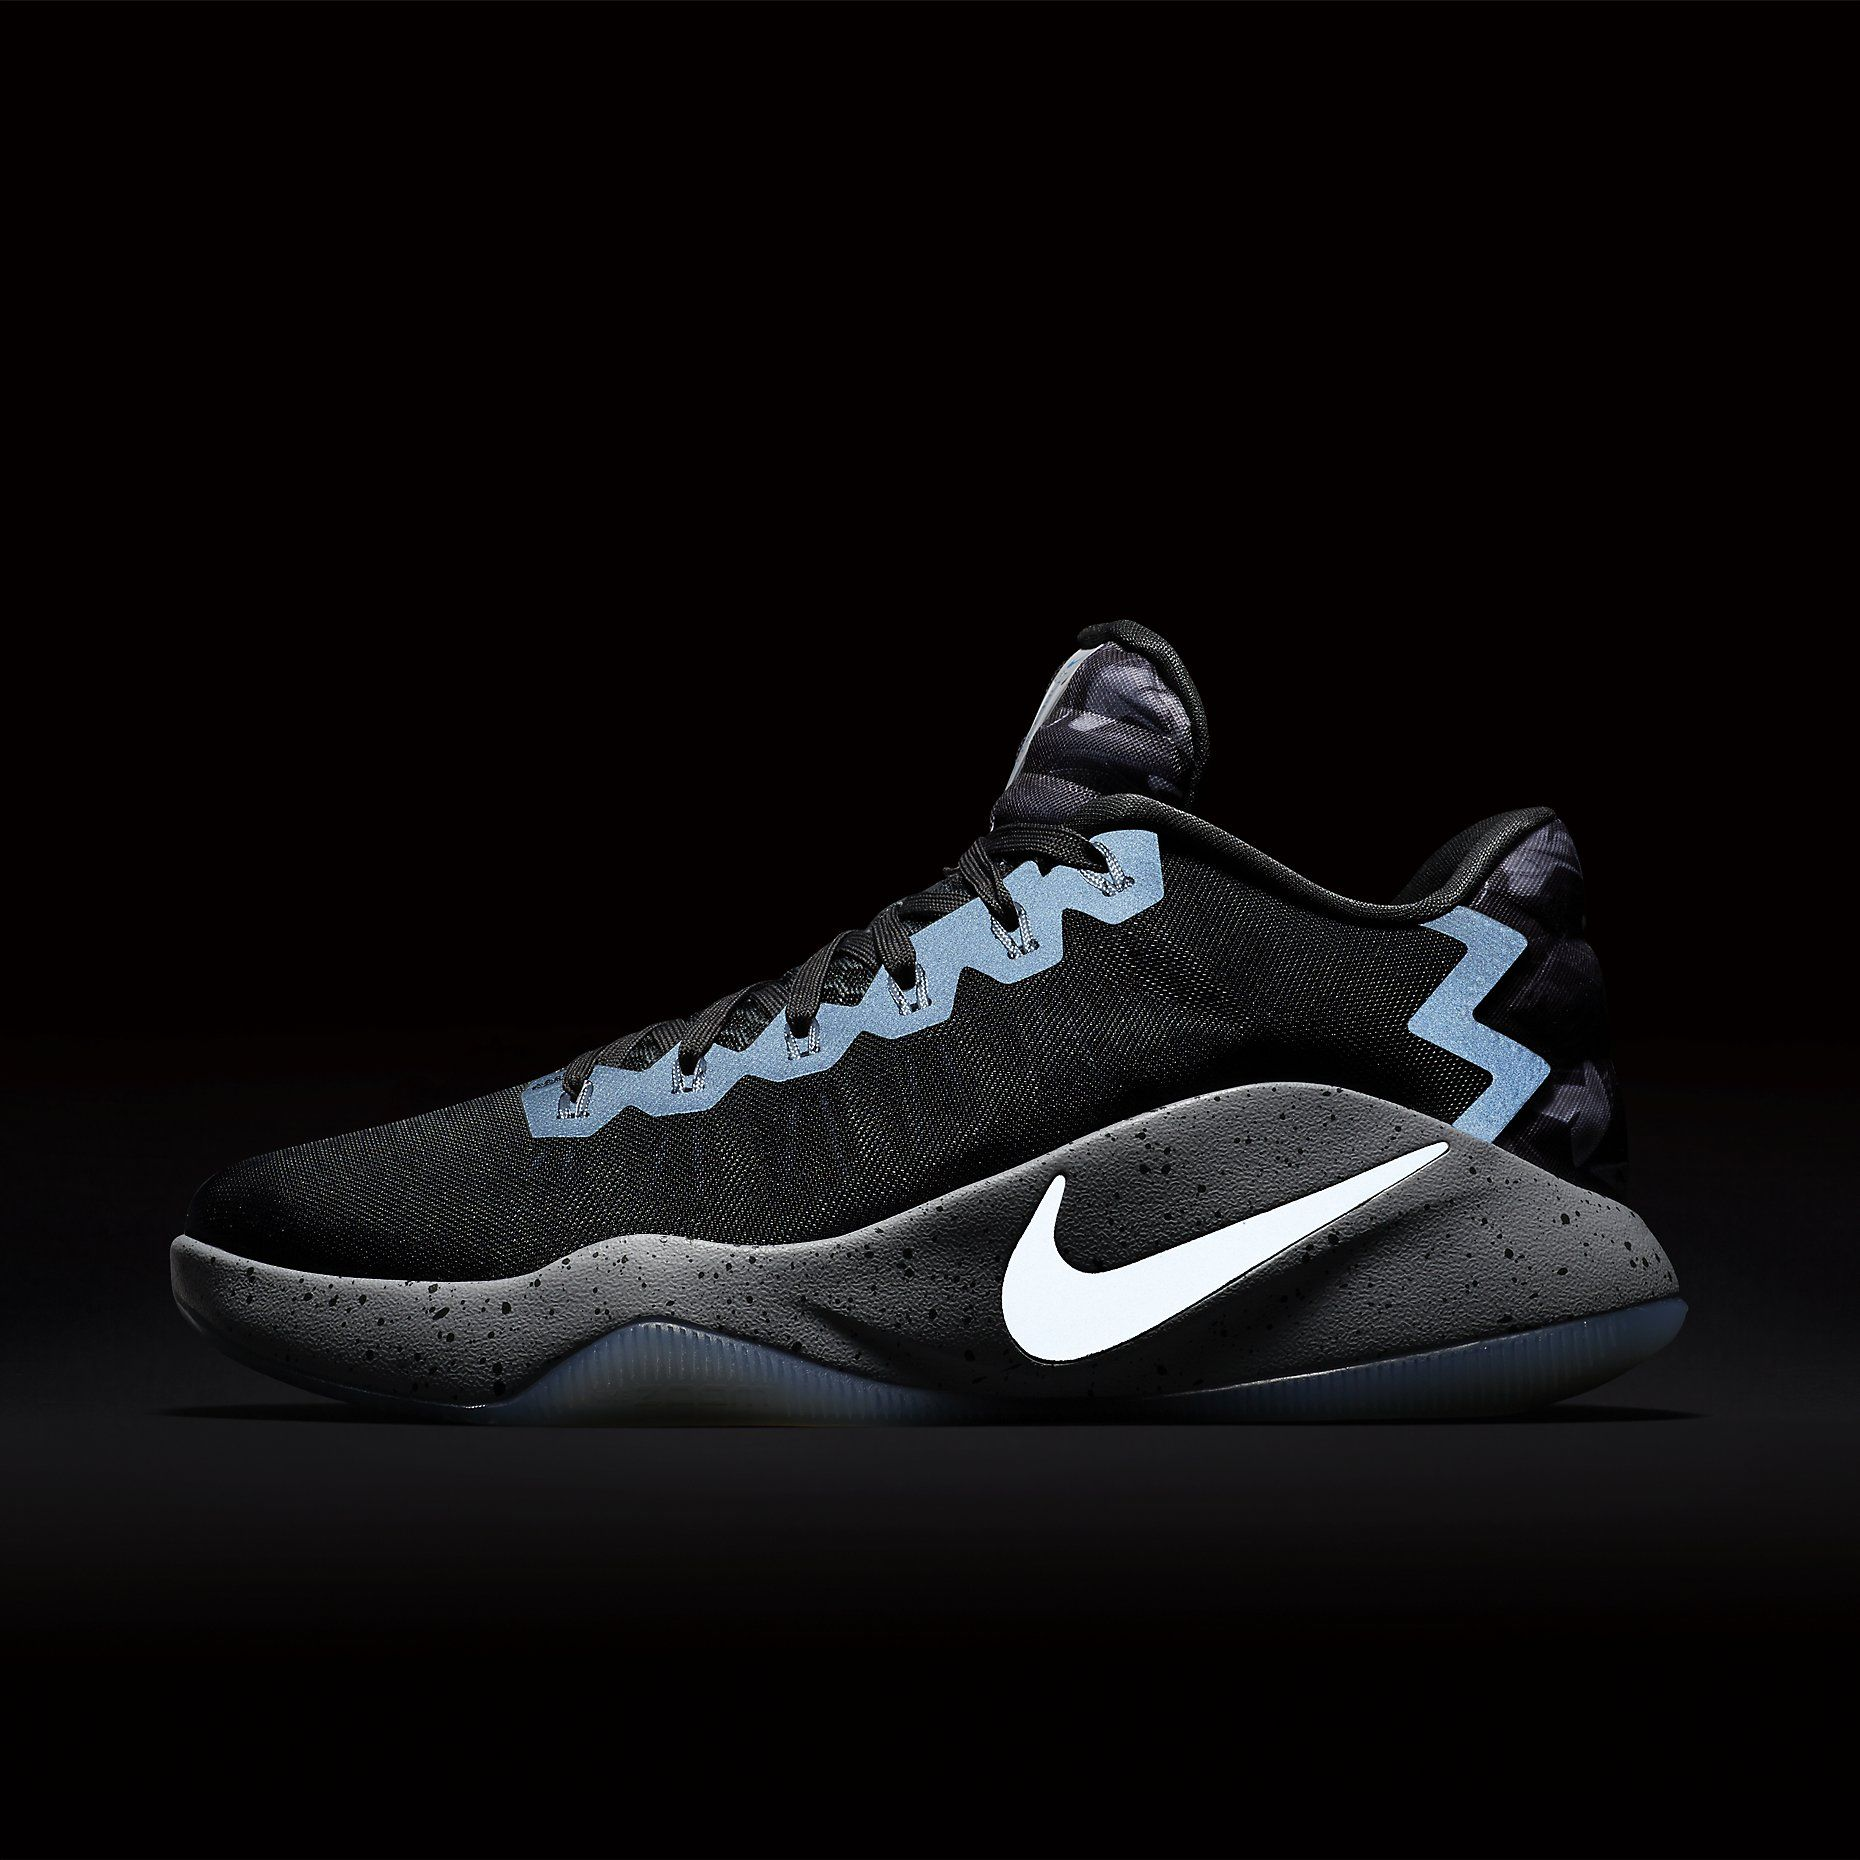 lowest price 971a9 84b05 ... australia the legit and authentic nike jordan sneaker store online  73bfe 6b8c9 ...